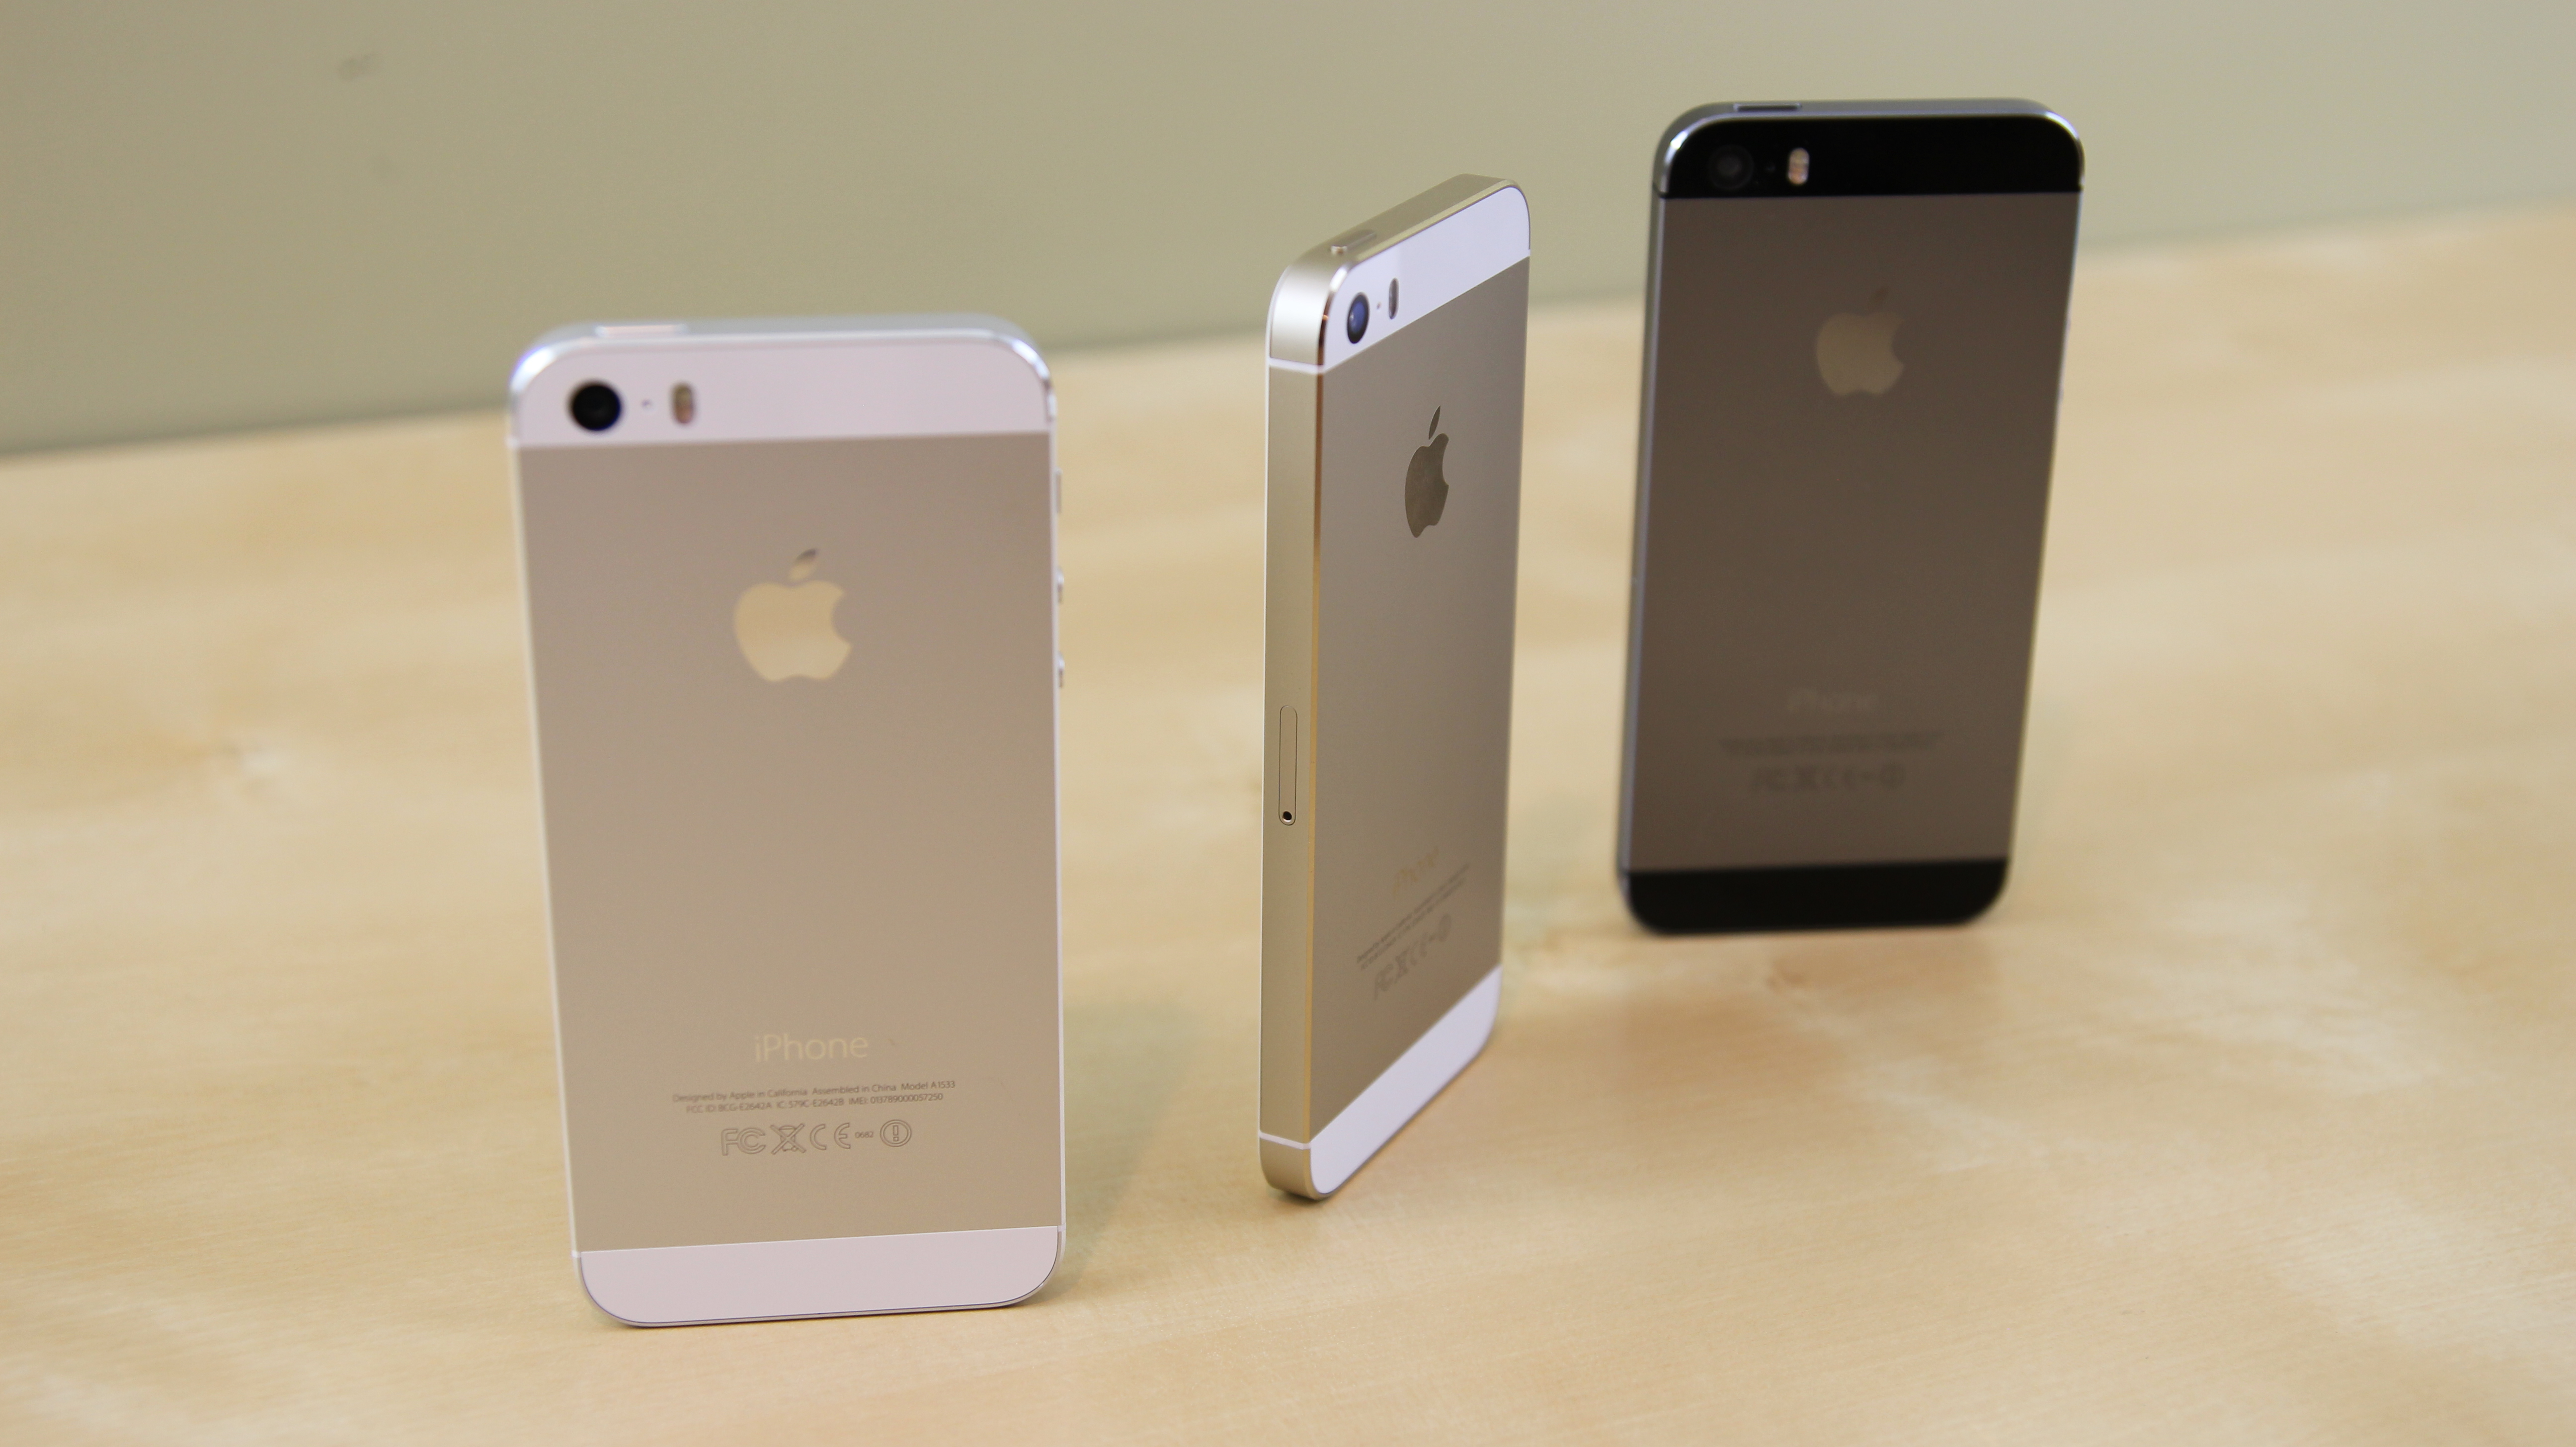 iphone 5s apple apple iphone 5s vs 5c comparison w features huffpost 2951